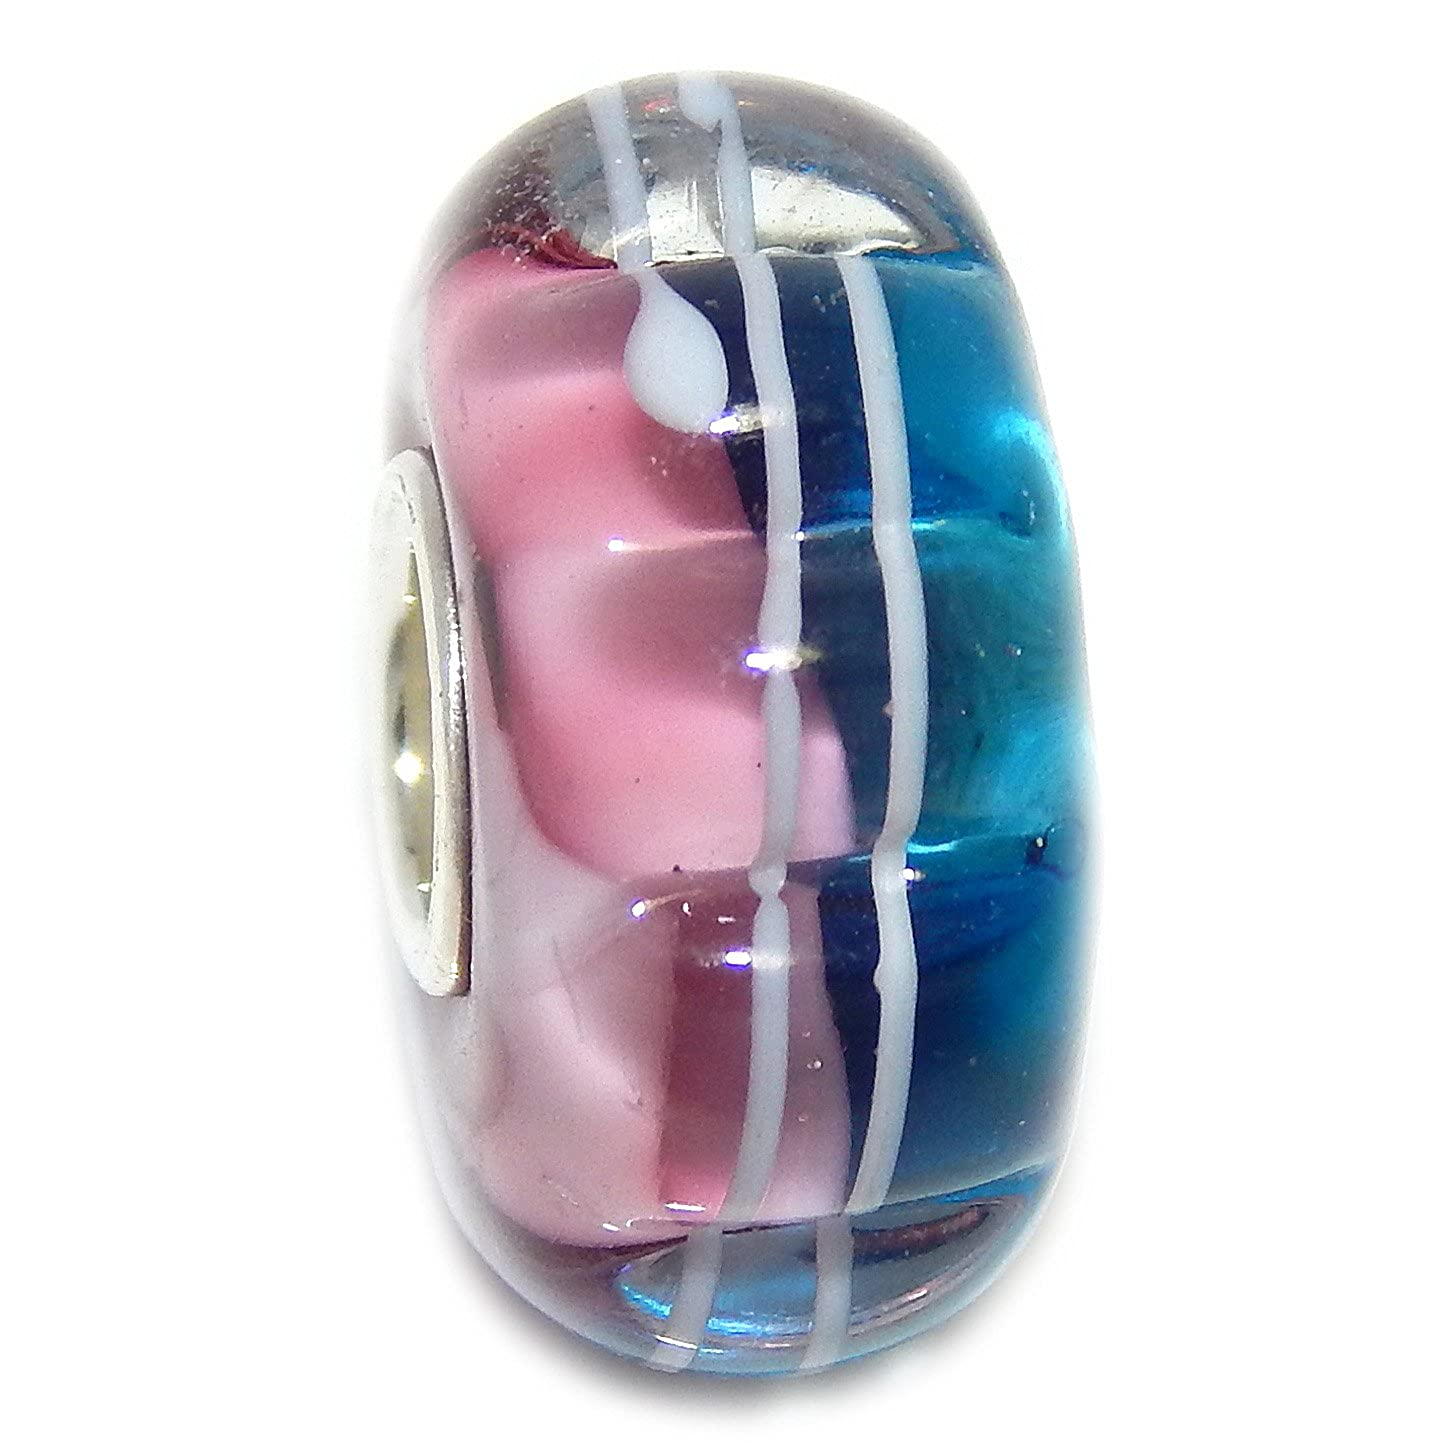 Solid 925 Sterling Silver Flower Shape with Blue and Pink Background and White Stripes Glass Charm Bead